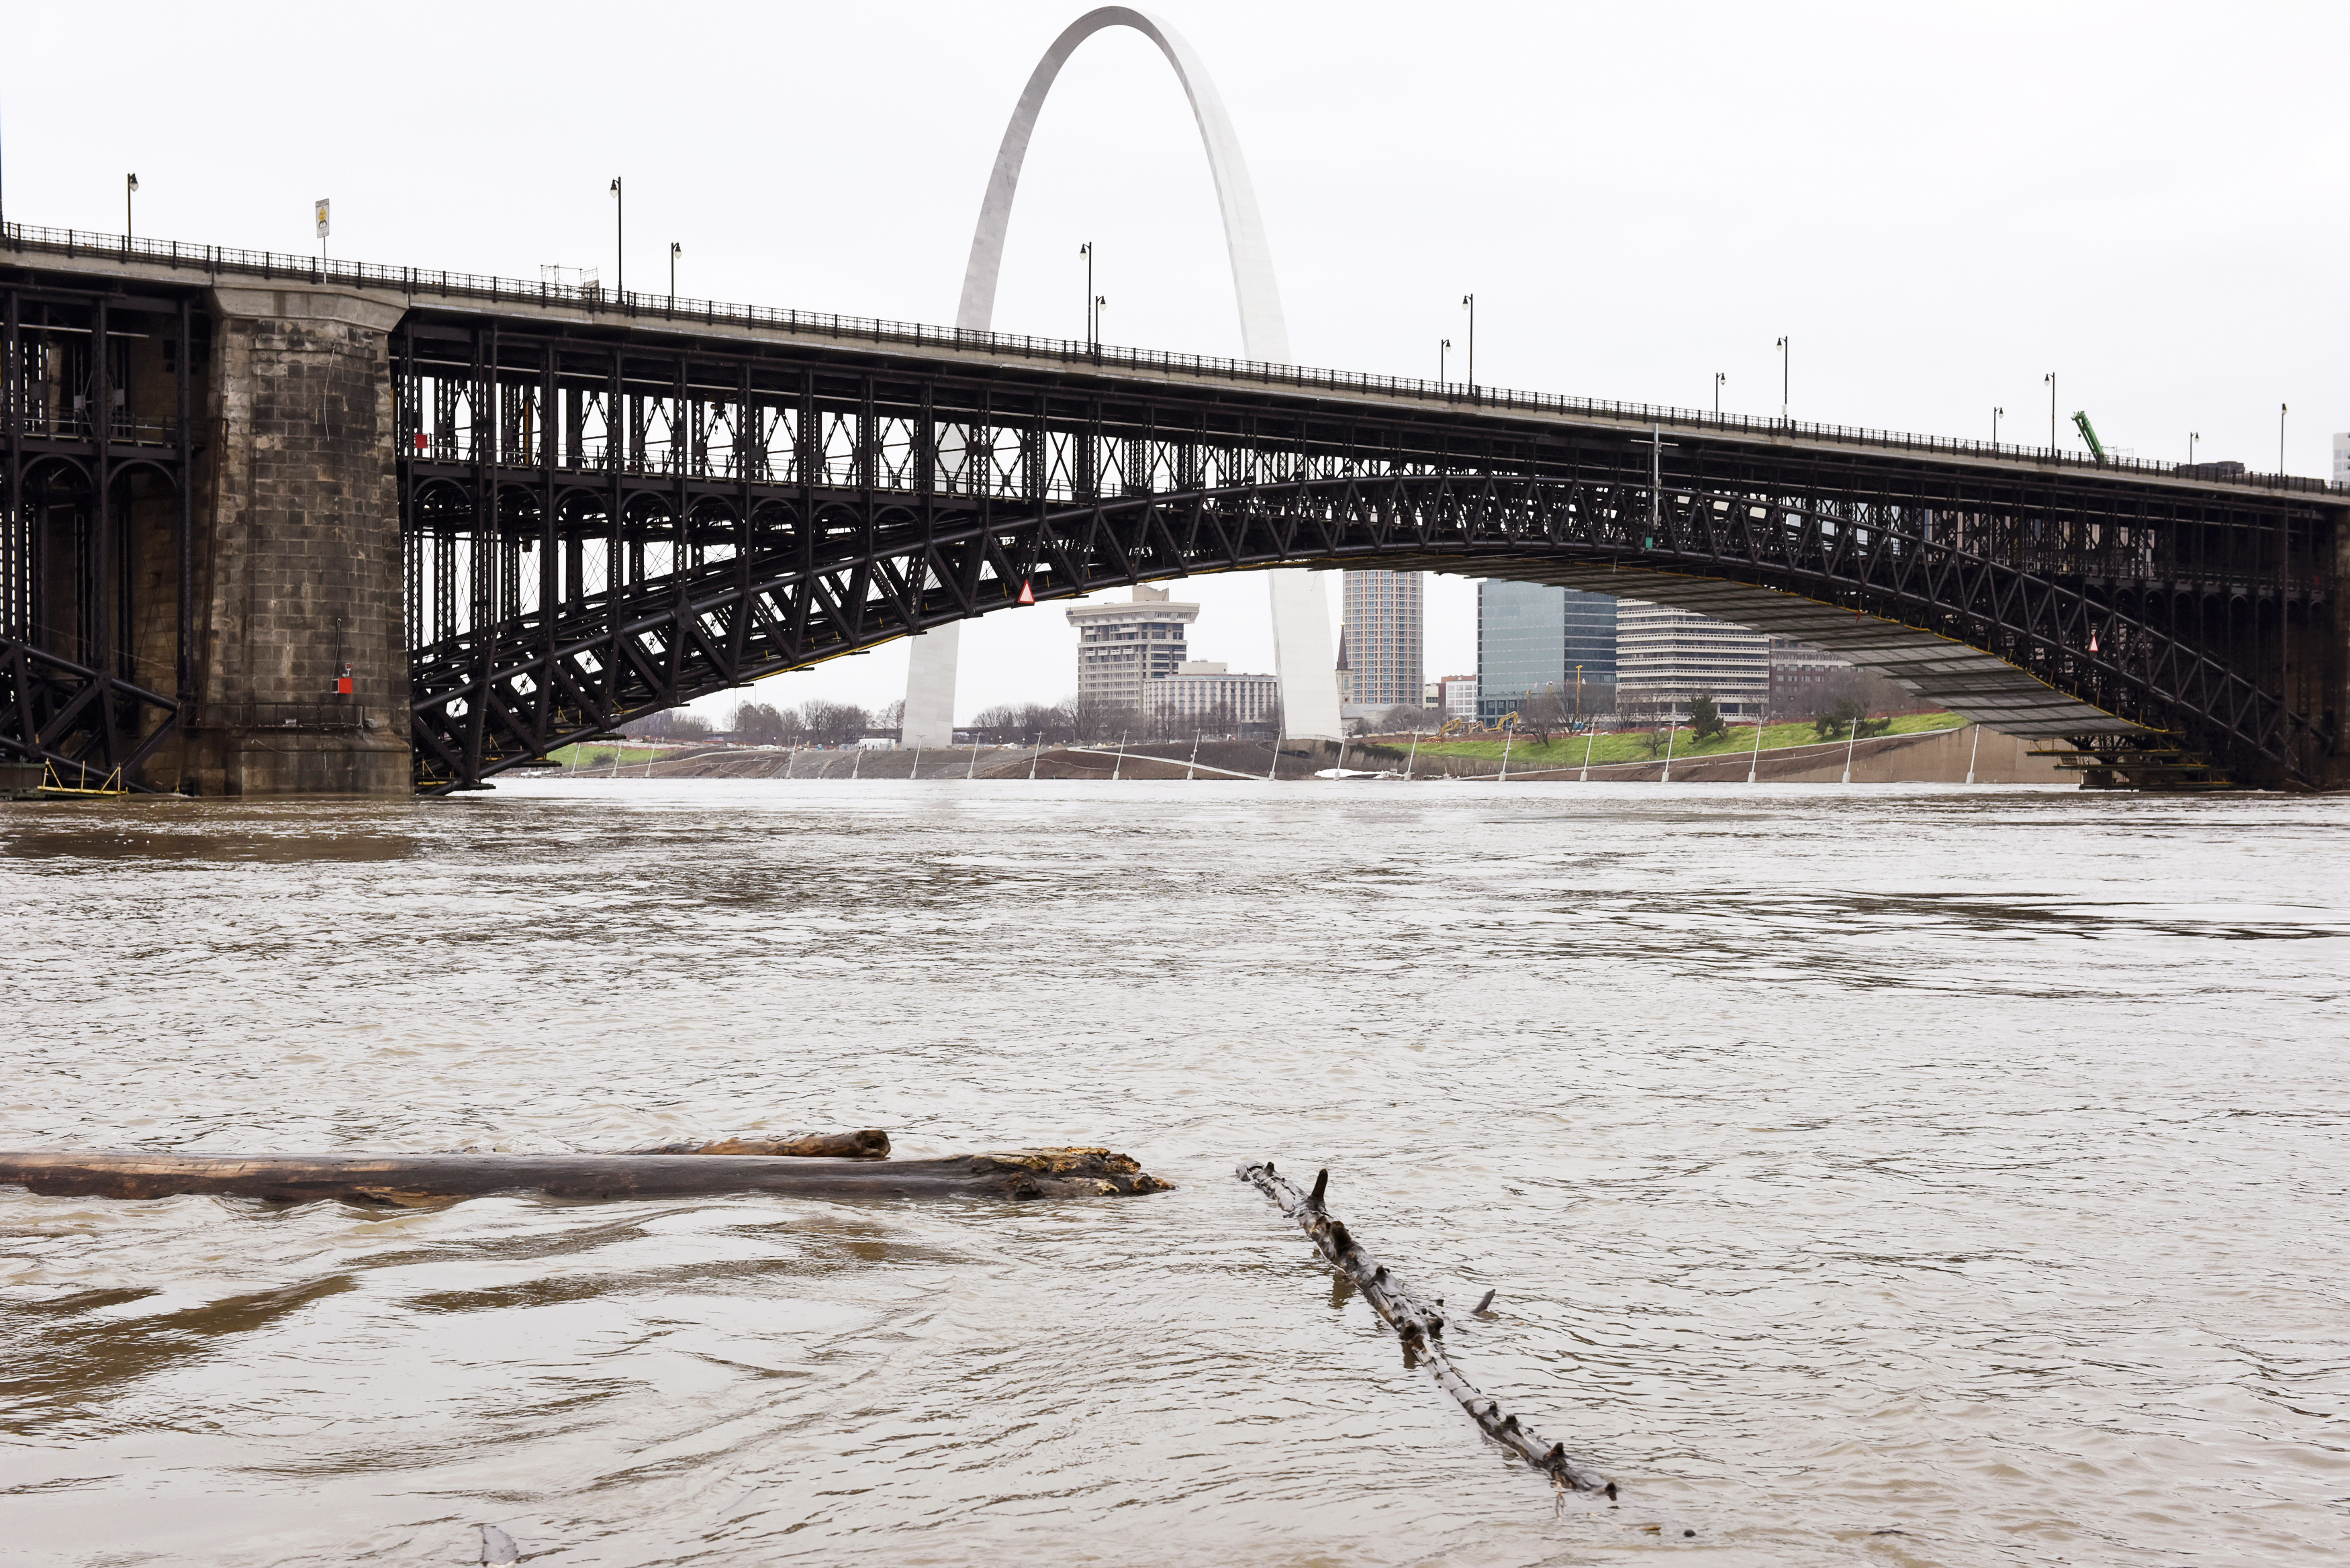 The Mississippi River is pictured flowing at 800,000 CFS (cubic feet per second) measured by the U.S. Geological Survey (USGS) in St. Louis, Missouri, December 31, 2015.  Missouri and Illinois were bracing for more flooding on Thursday as rain-swollen rivers, some at record heights, overflowed their banks, washing out hundreds of structures and leaving thousands of people displaced from their homes.  REUTERS/Kate Munsch